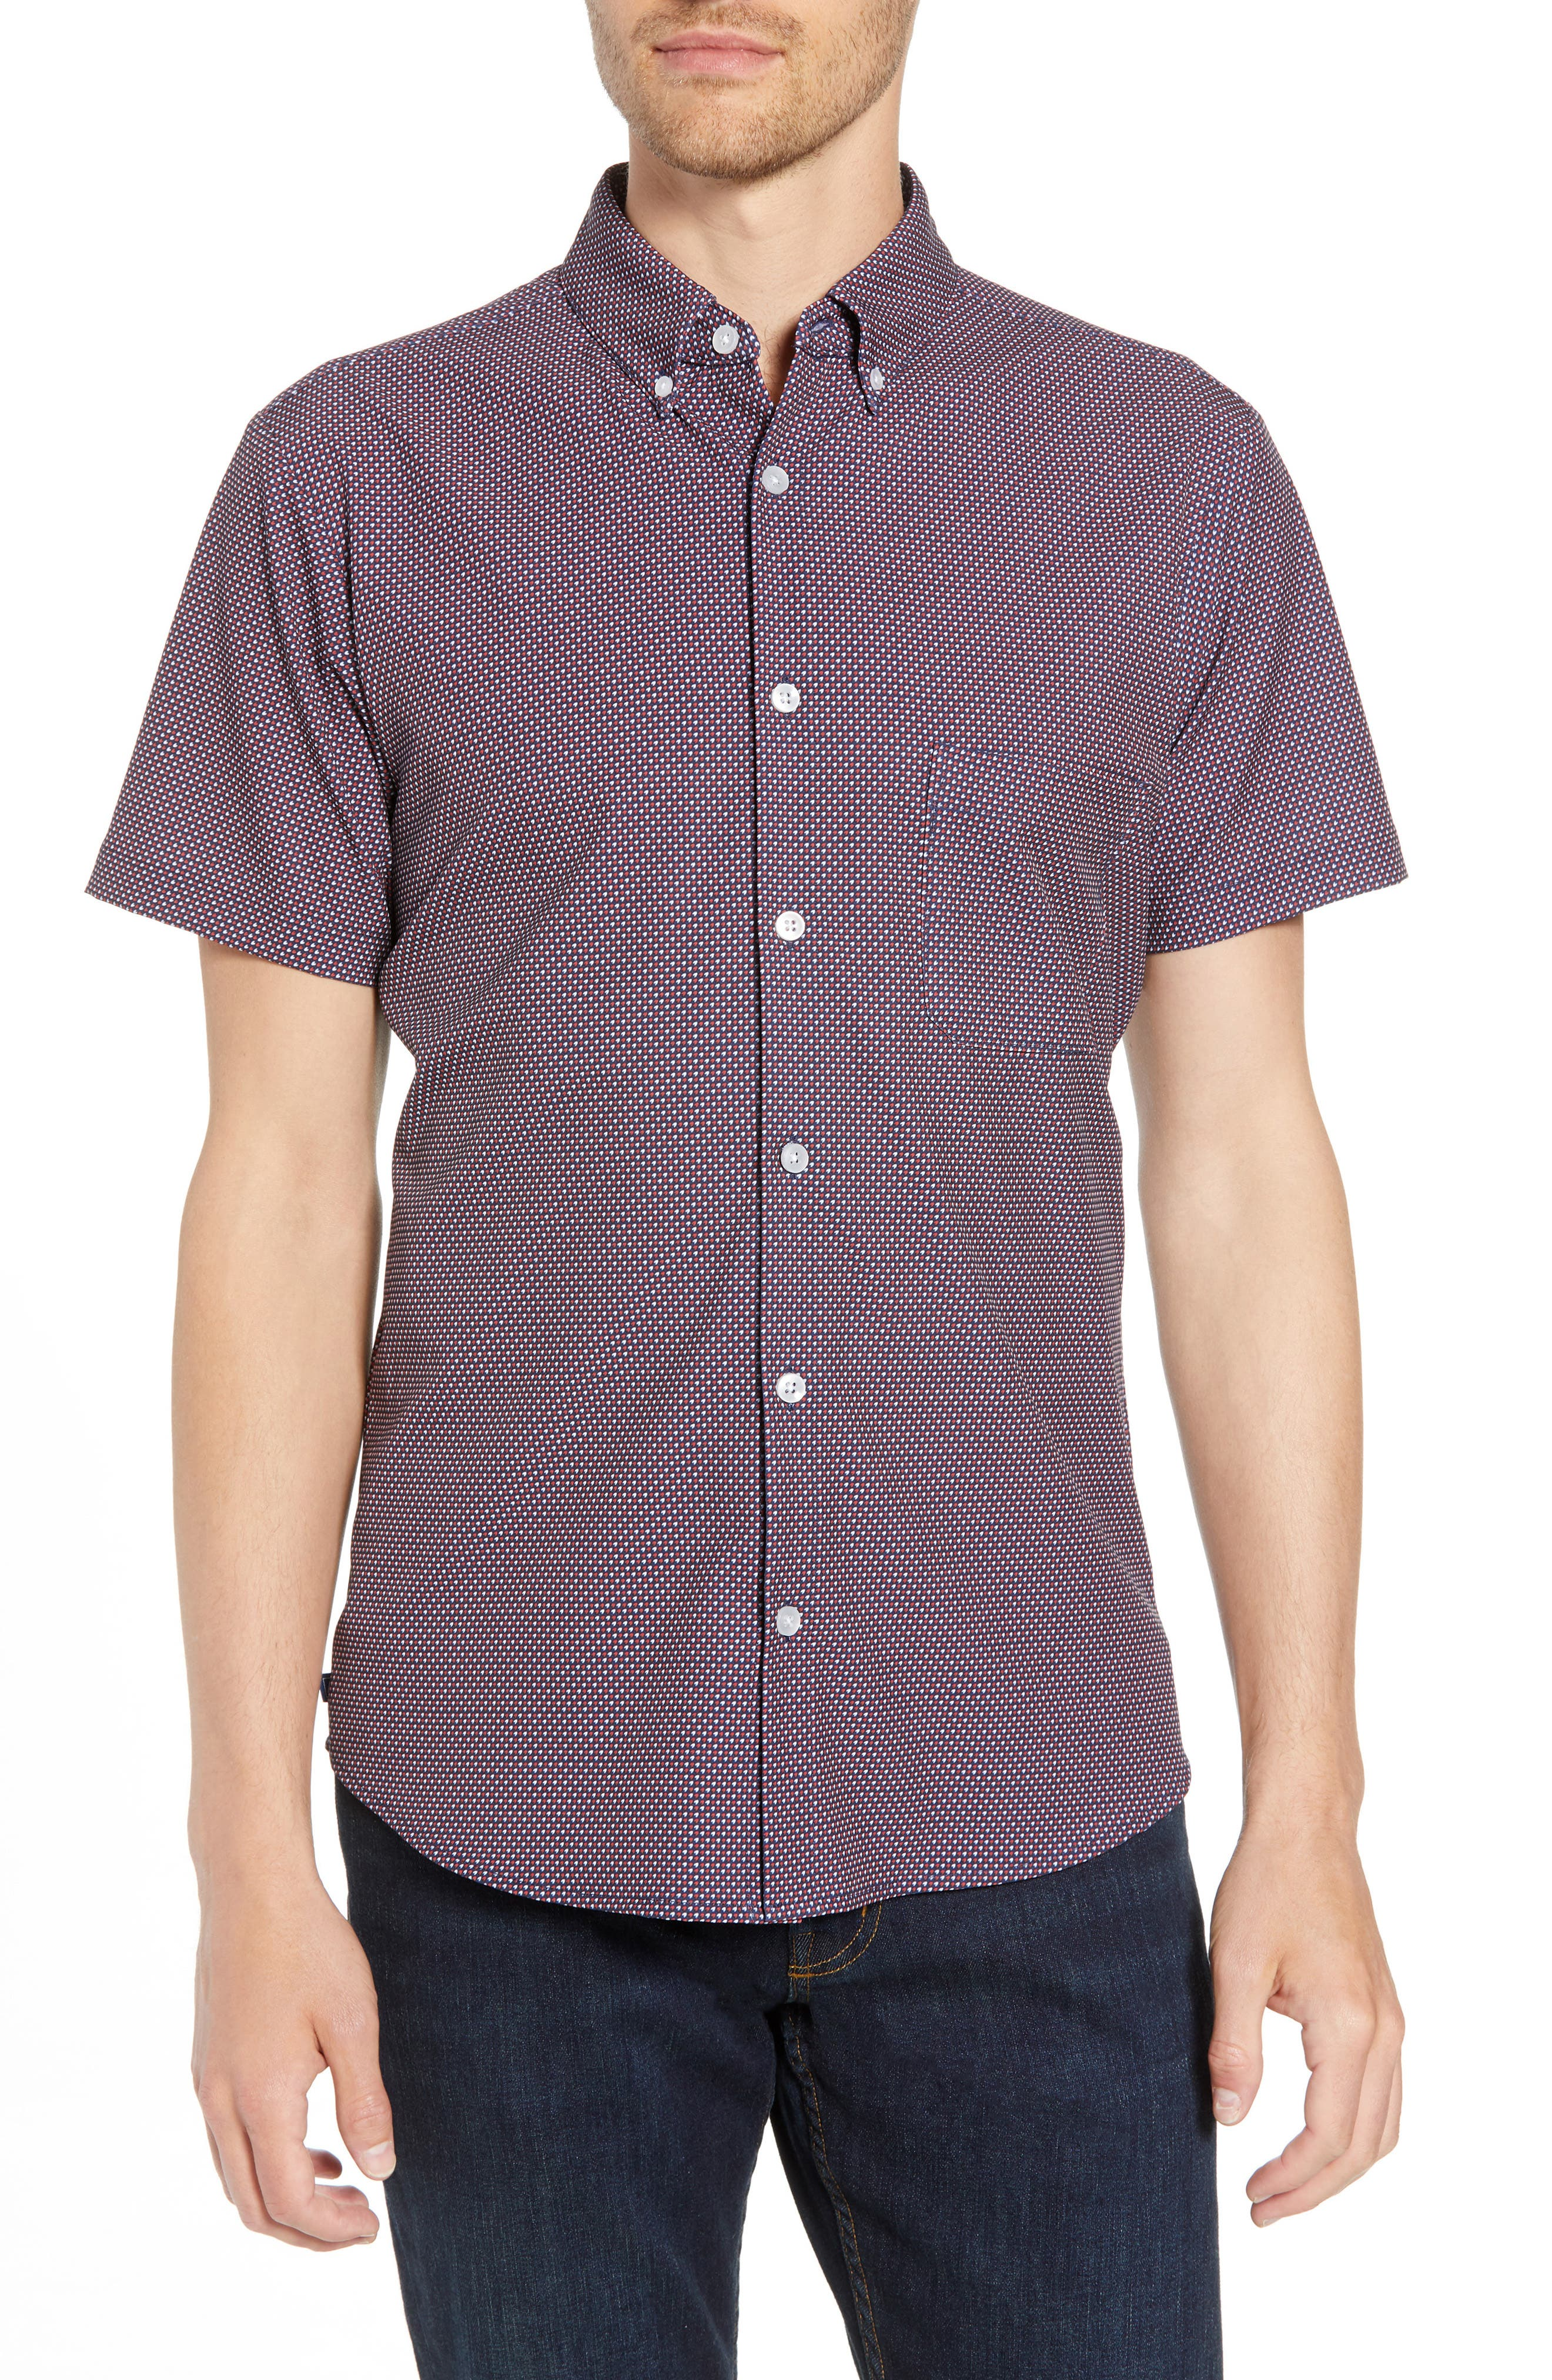 Gibson Slim Fit Dot Performance Sport Shirt,                             Main thumbnail 1, color,                             Red